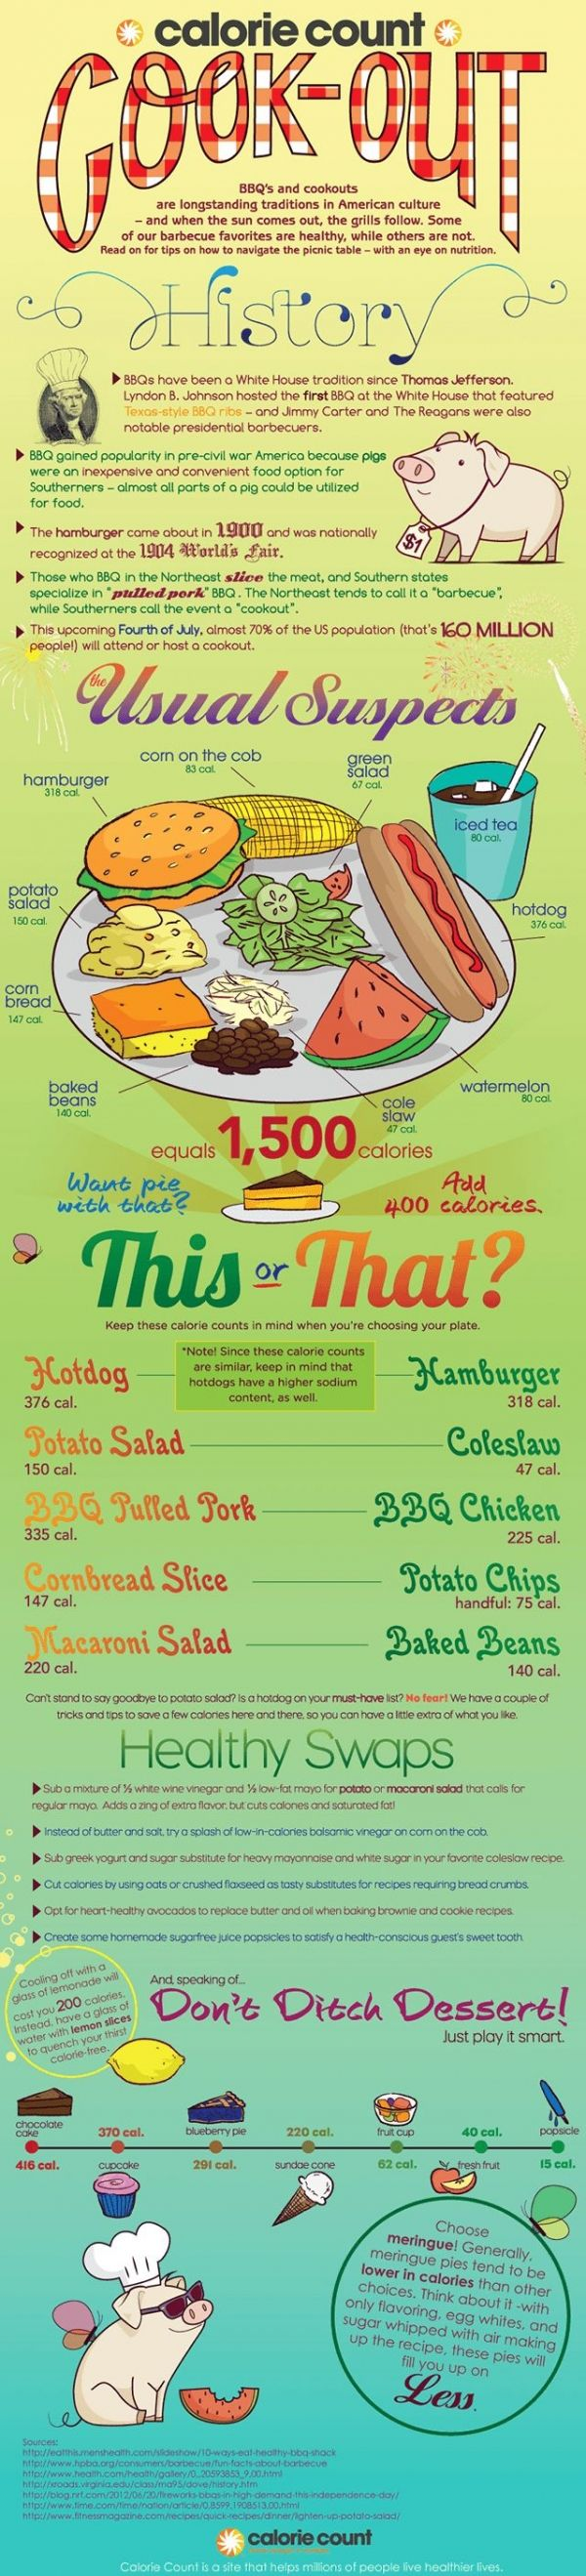 Calorie Count - Check out more barbecue tips and tricks at TexasBBQNinja.com